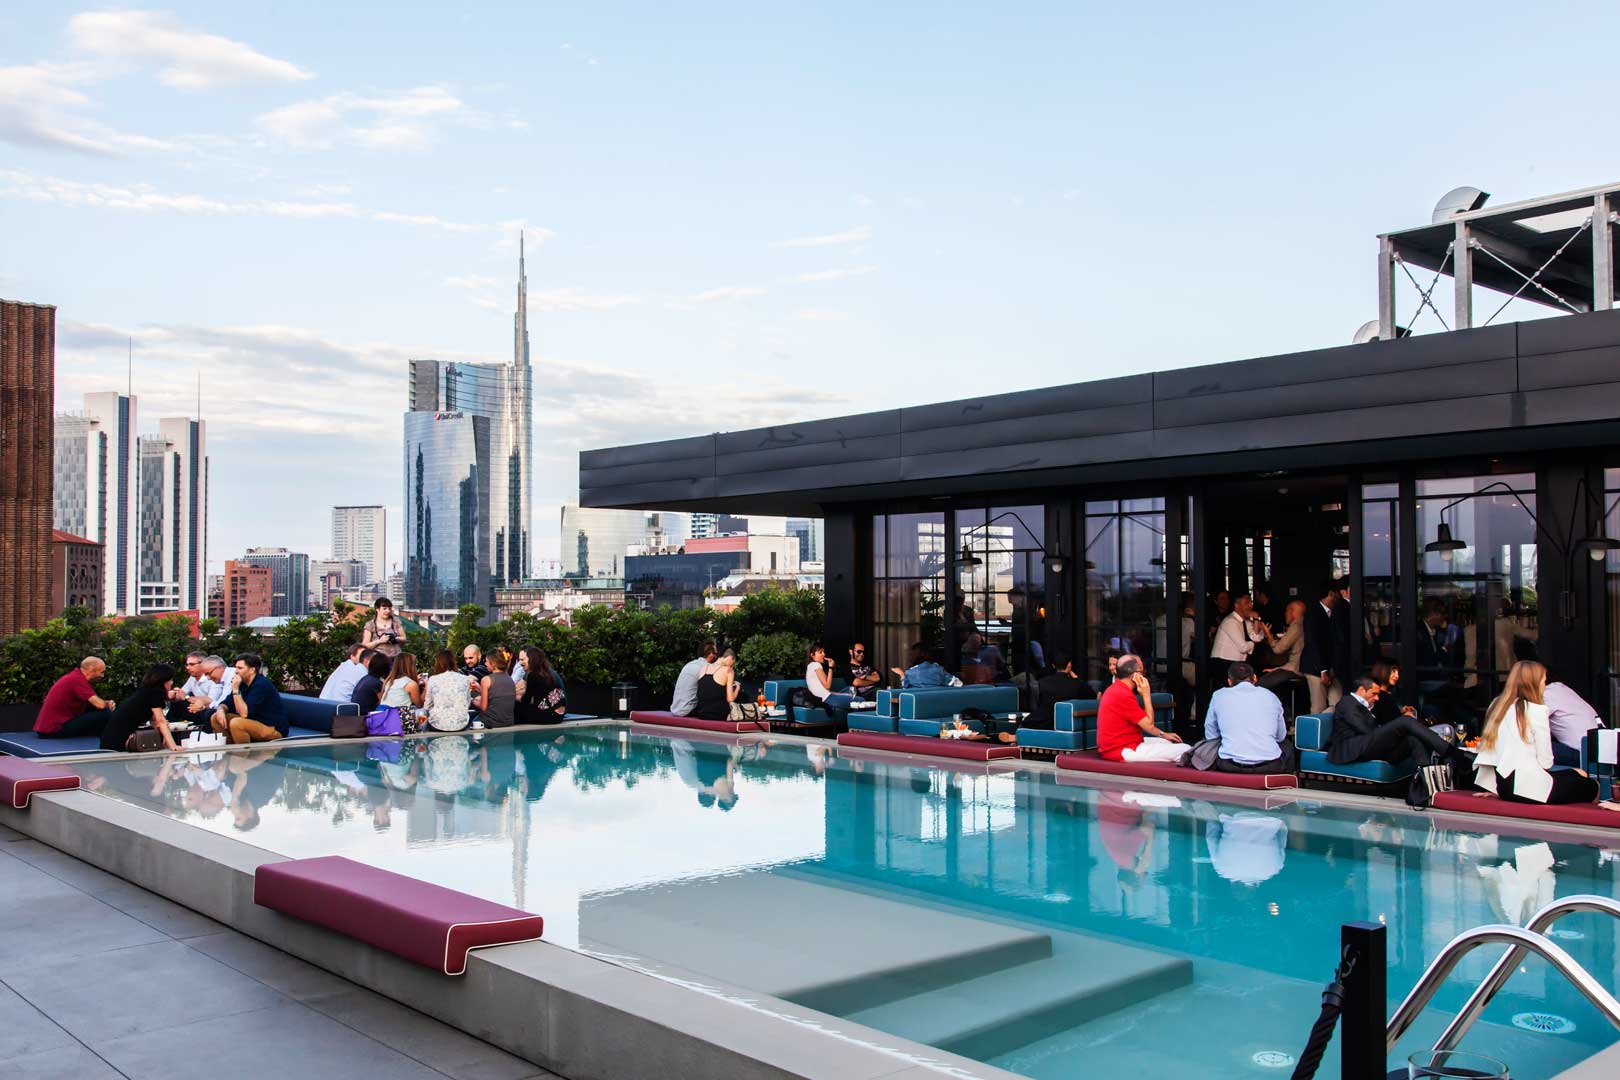 Ceresio 7 | Flawless Milano - The Lifestyle Guide